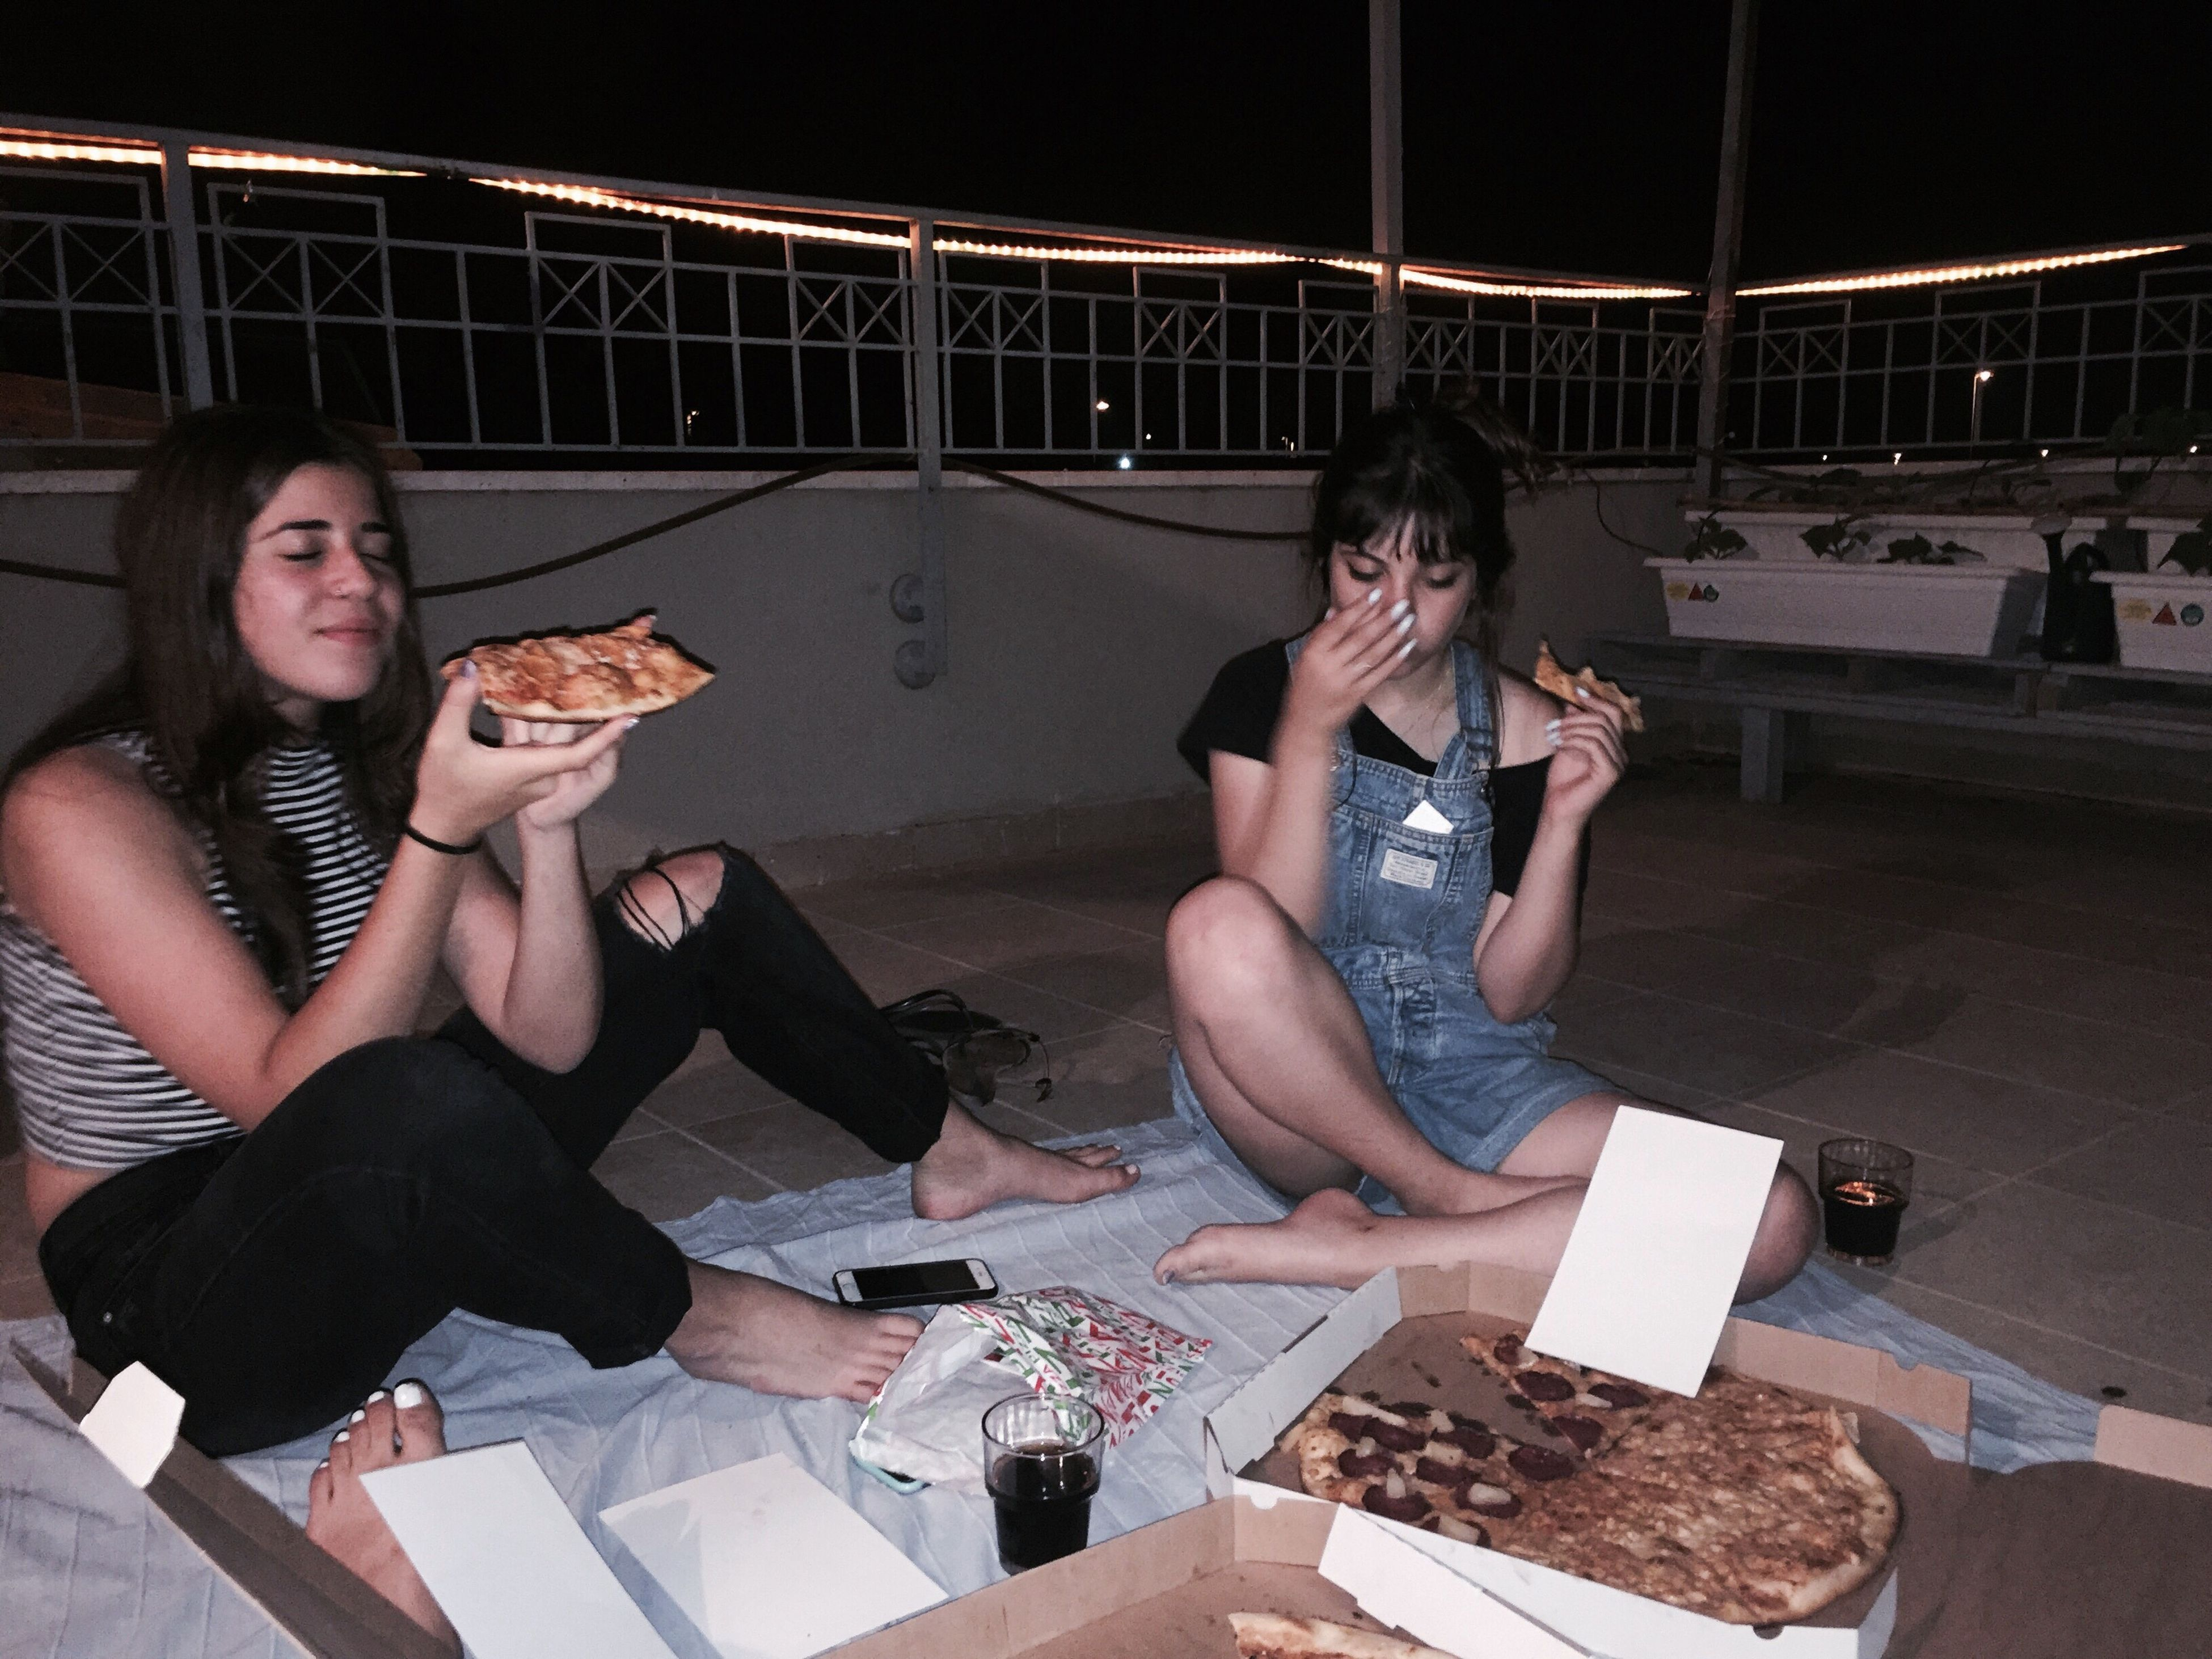 young adult, young women, sitting, food and drink, young men, night, two people, full length, holding, real people, leisure activity, togetherness, fun, indoors, food, playing, drink, pizza box, smiling, friendship